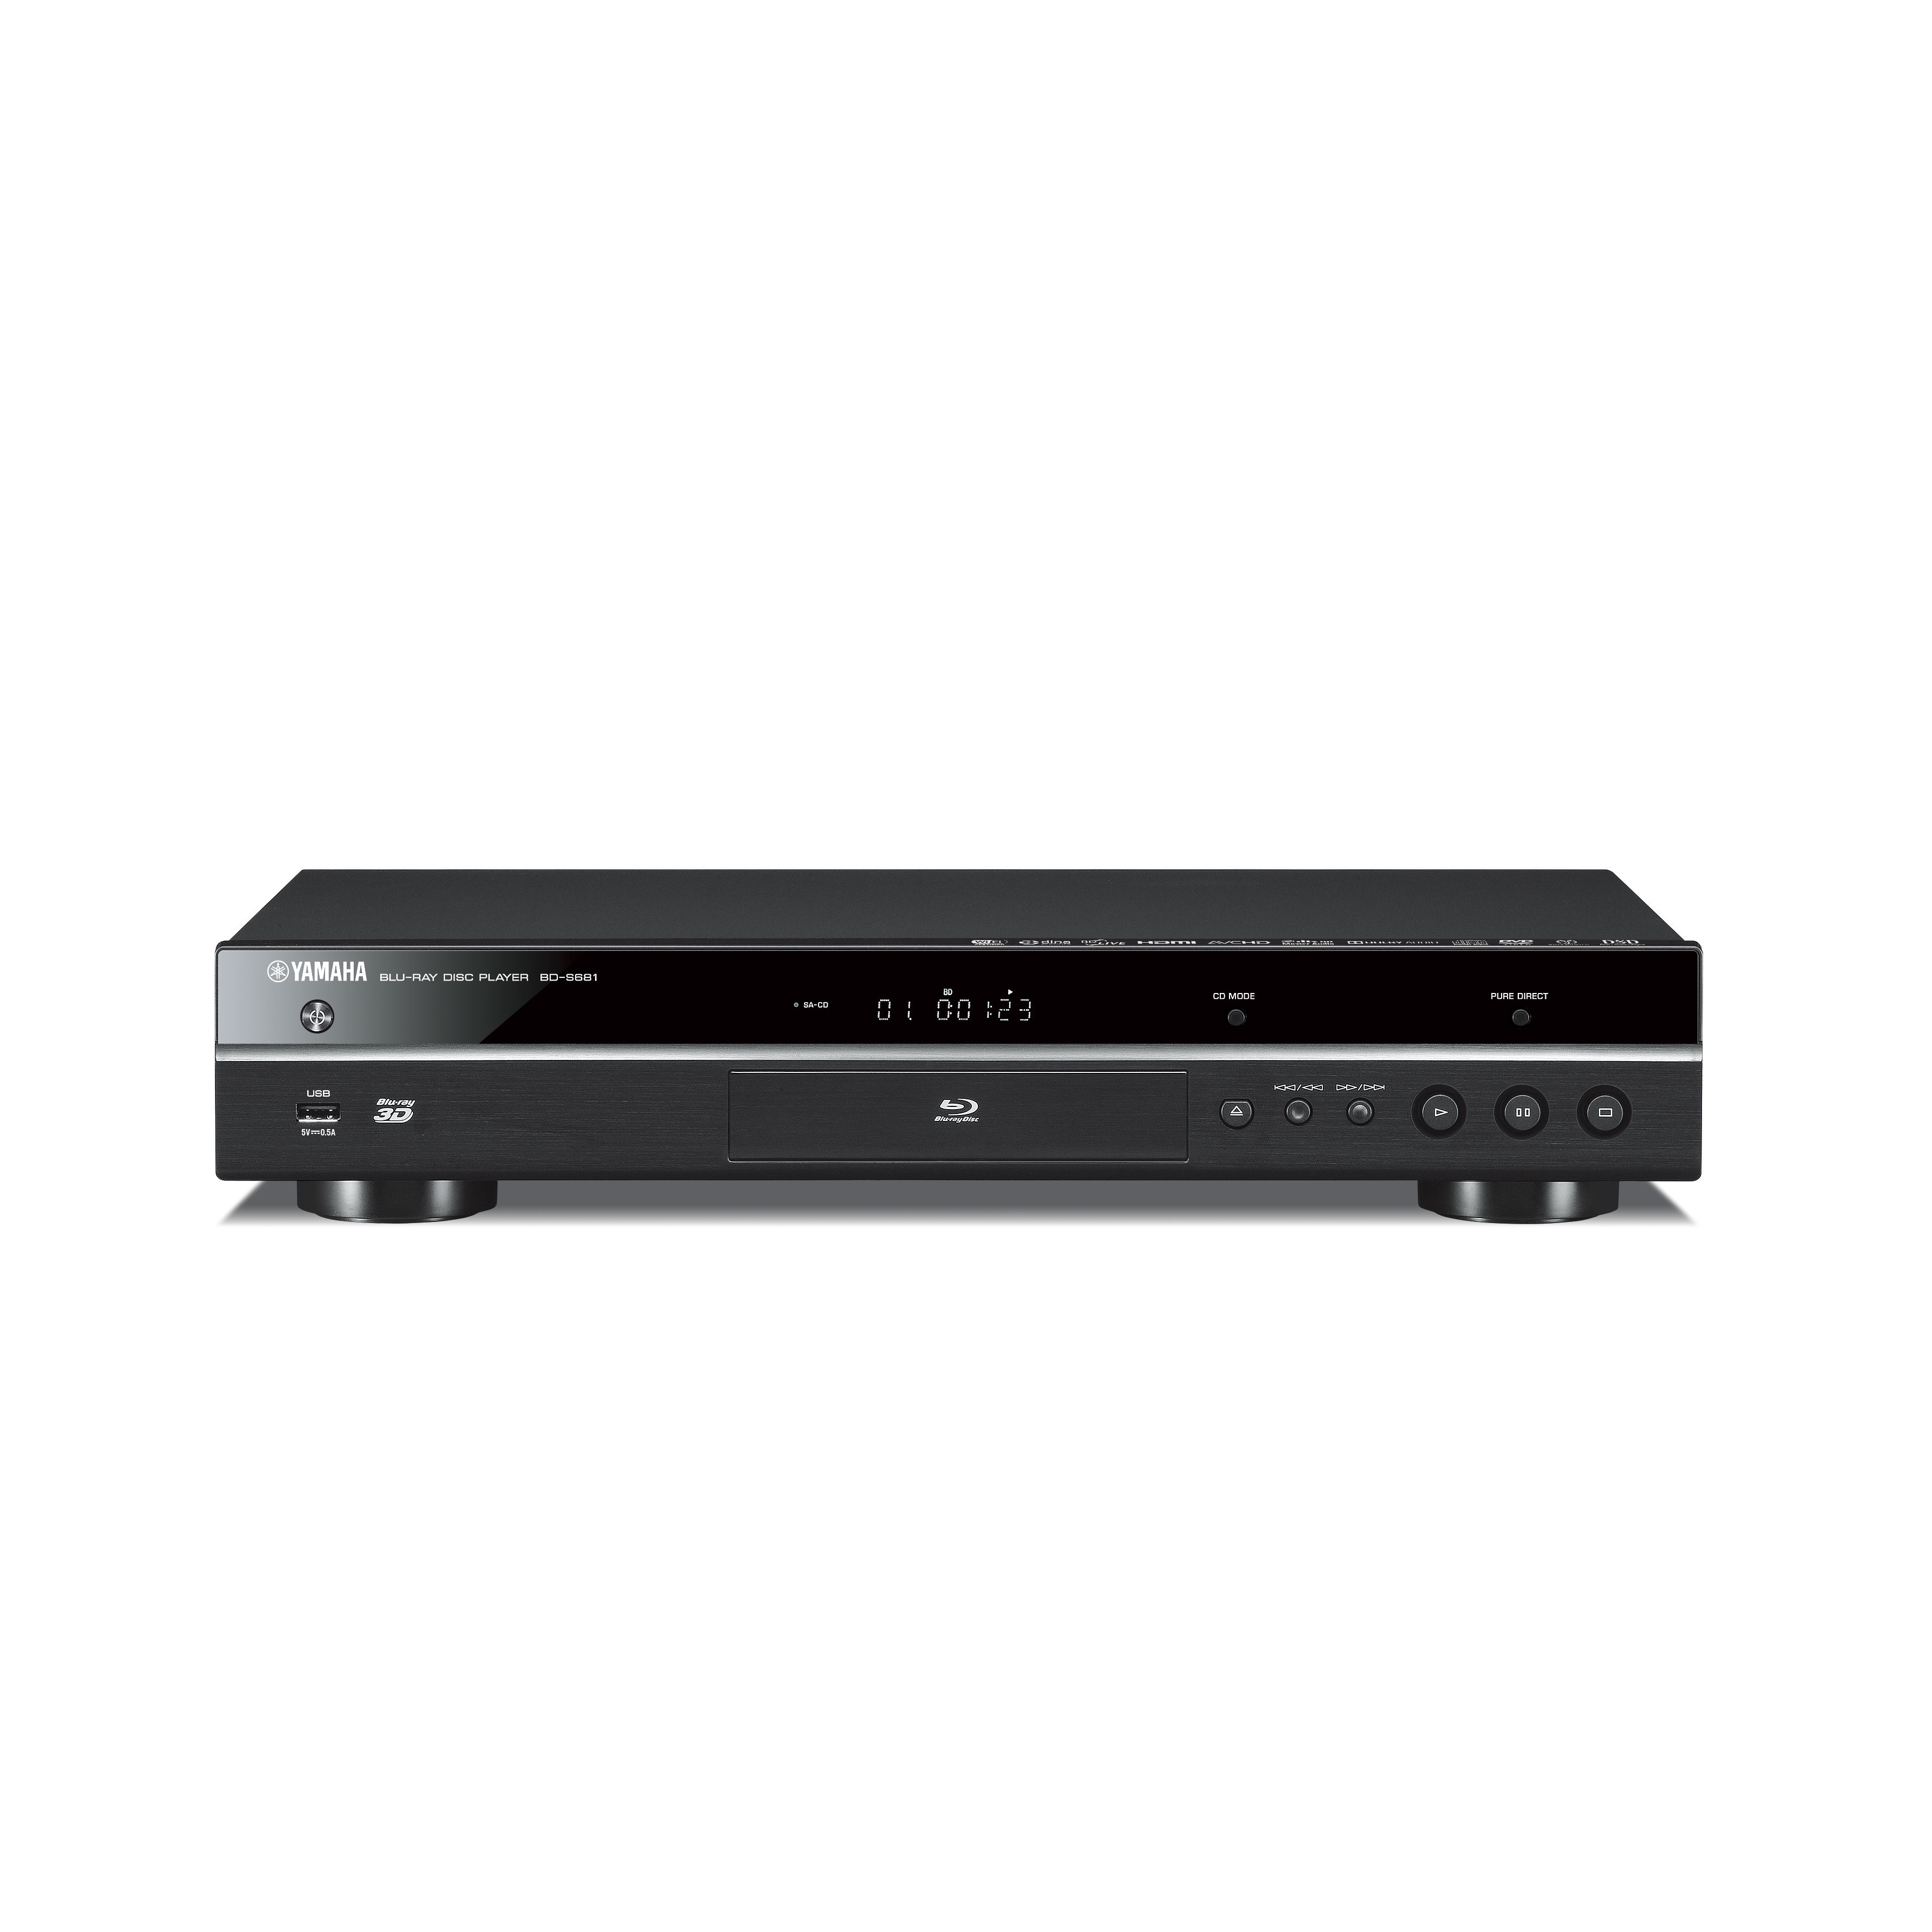 bd s681 overview blu ray players audio visual. Black Bedroom Furniture Sets. Home Design Ideas